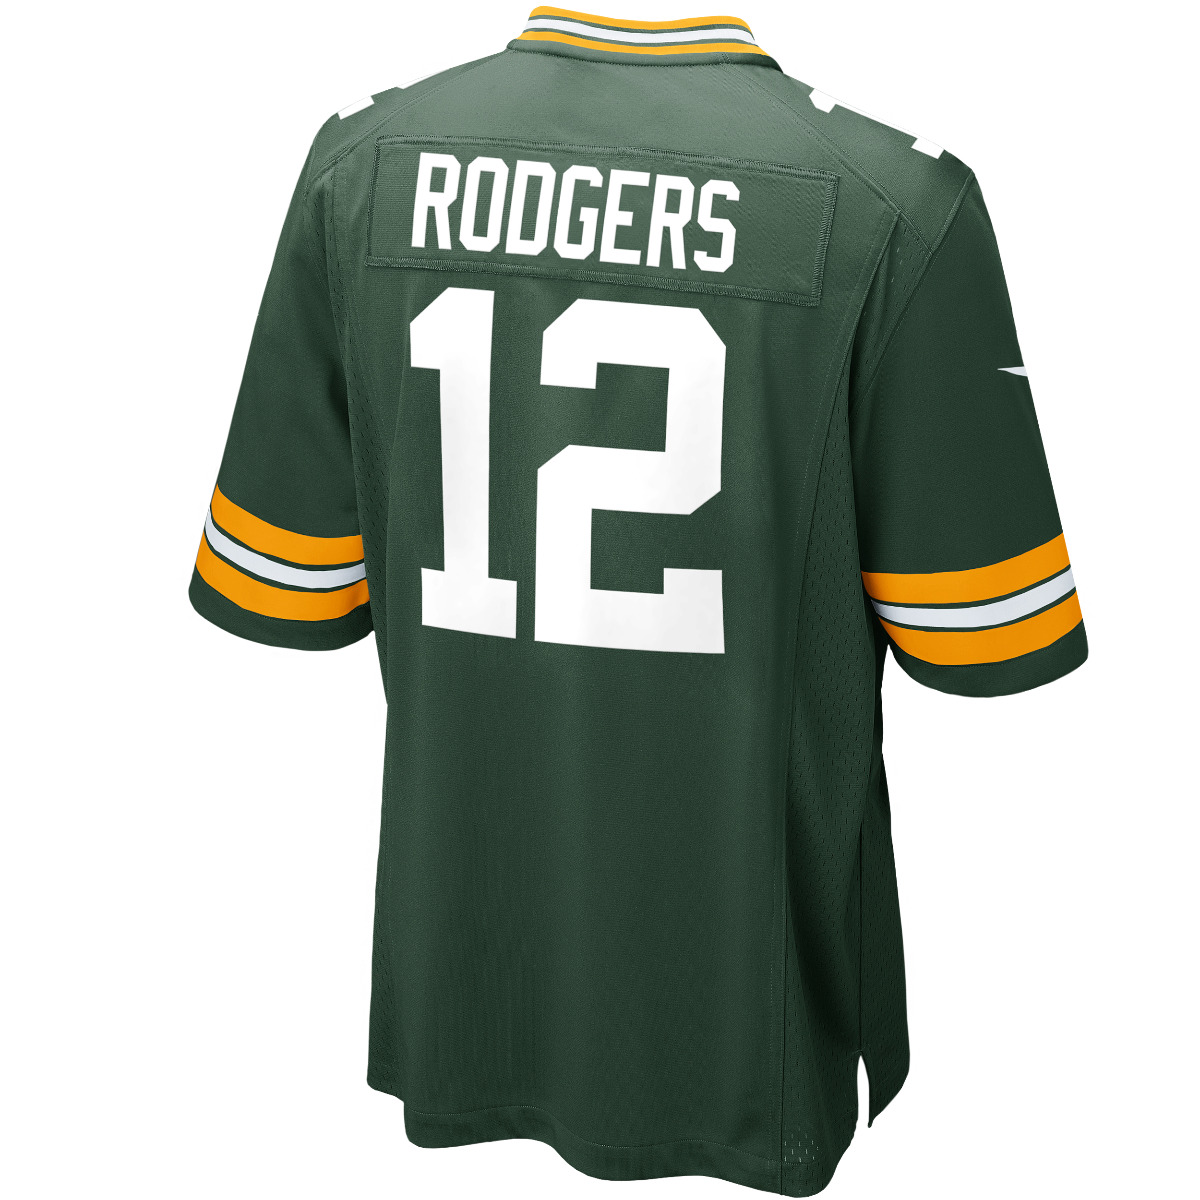 #12 Aaron Rodgers Home Game Jersey